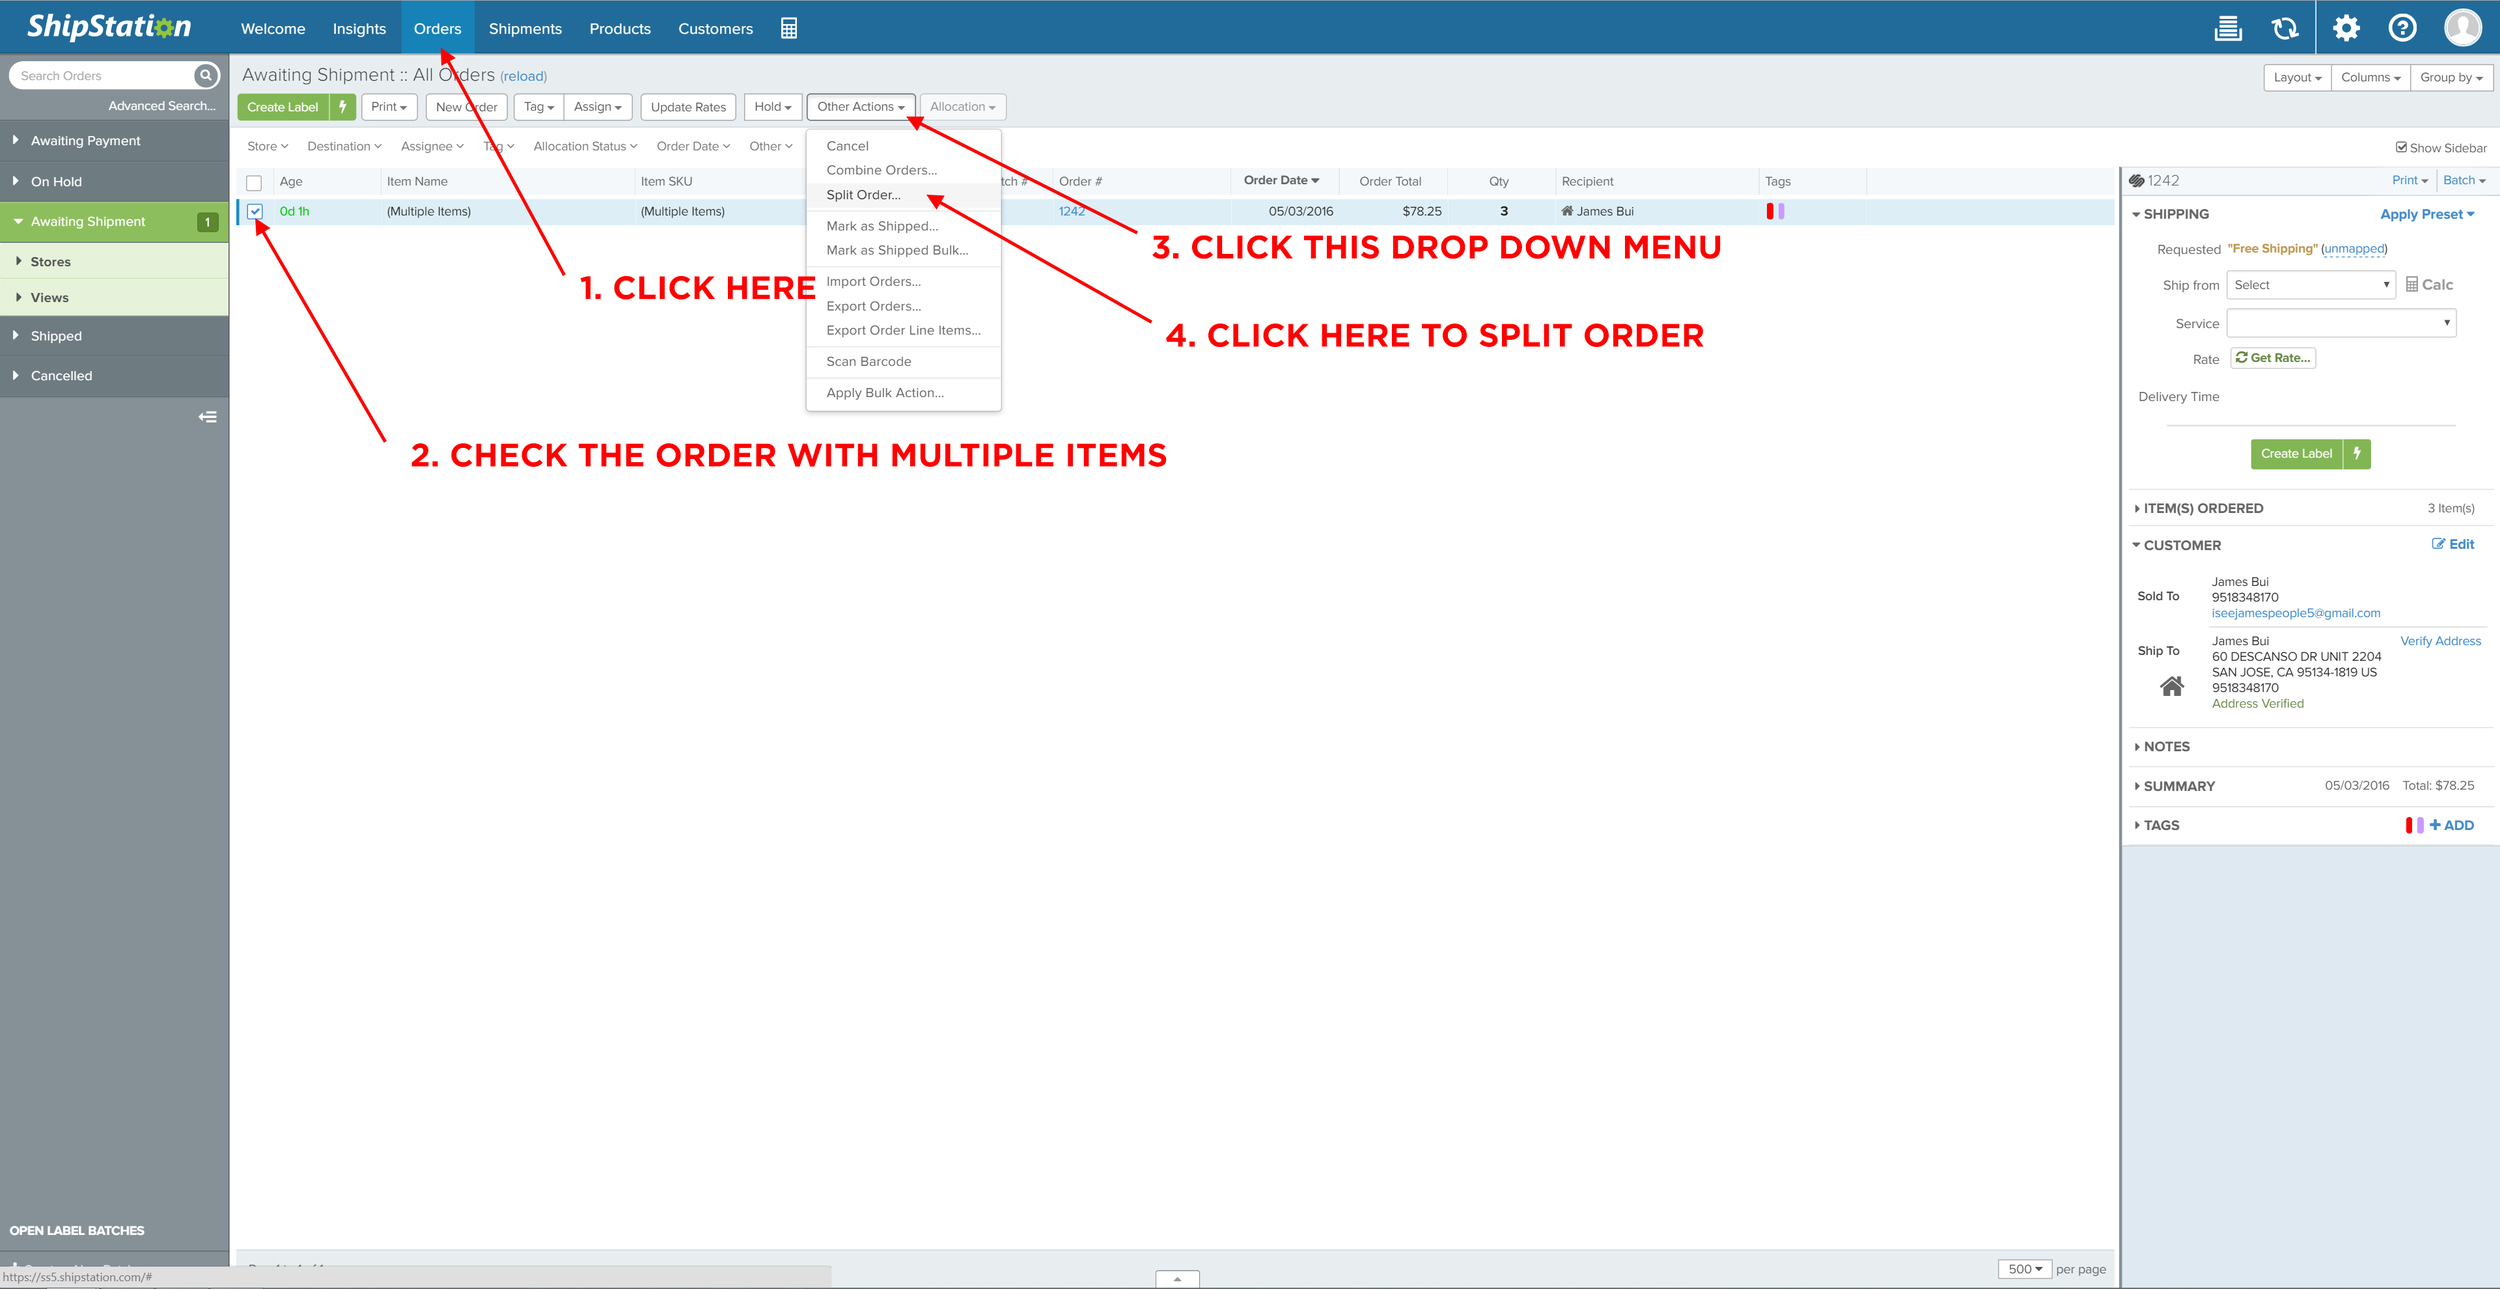 This shows you how to split orders.